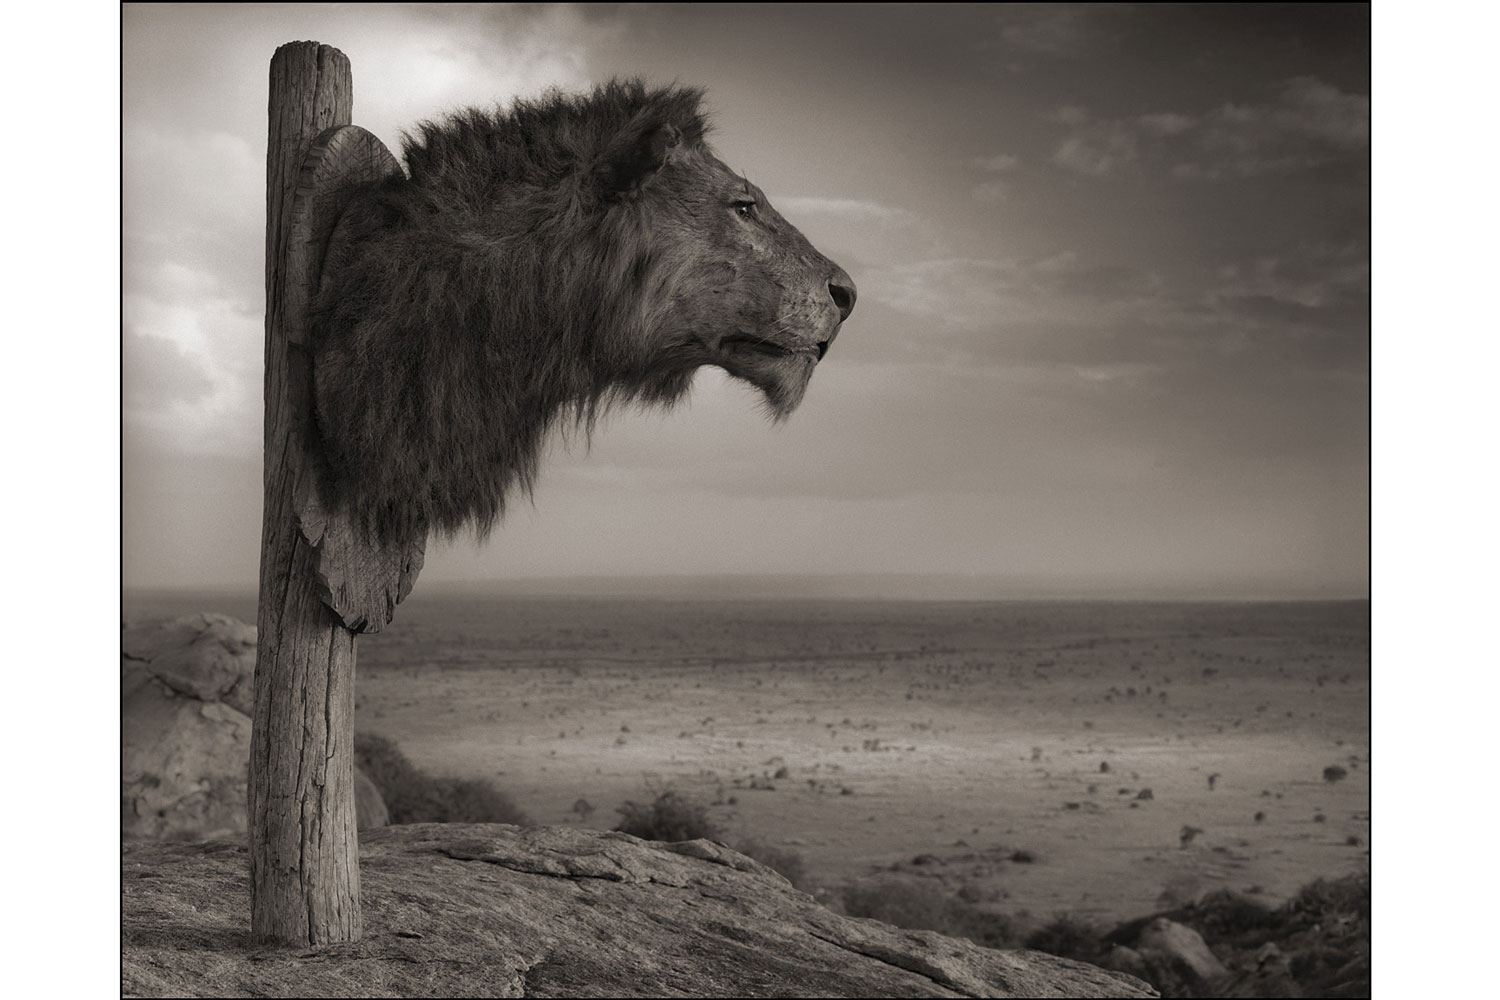 Exhibition. Nick Brandt,  Across the Ravaged Land.  Atlas Gallery, London, England. On view until November 10, 2013. Pictured: Trophy of Lion, Chyulu Hills, 2012.